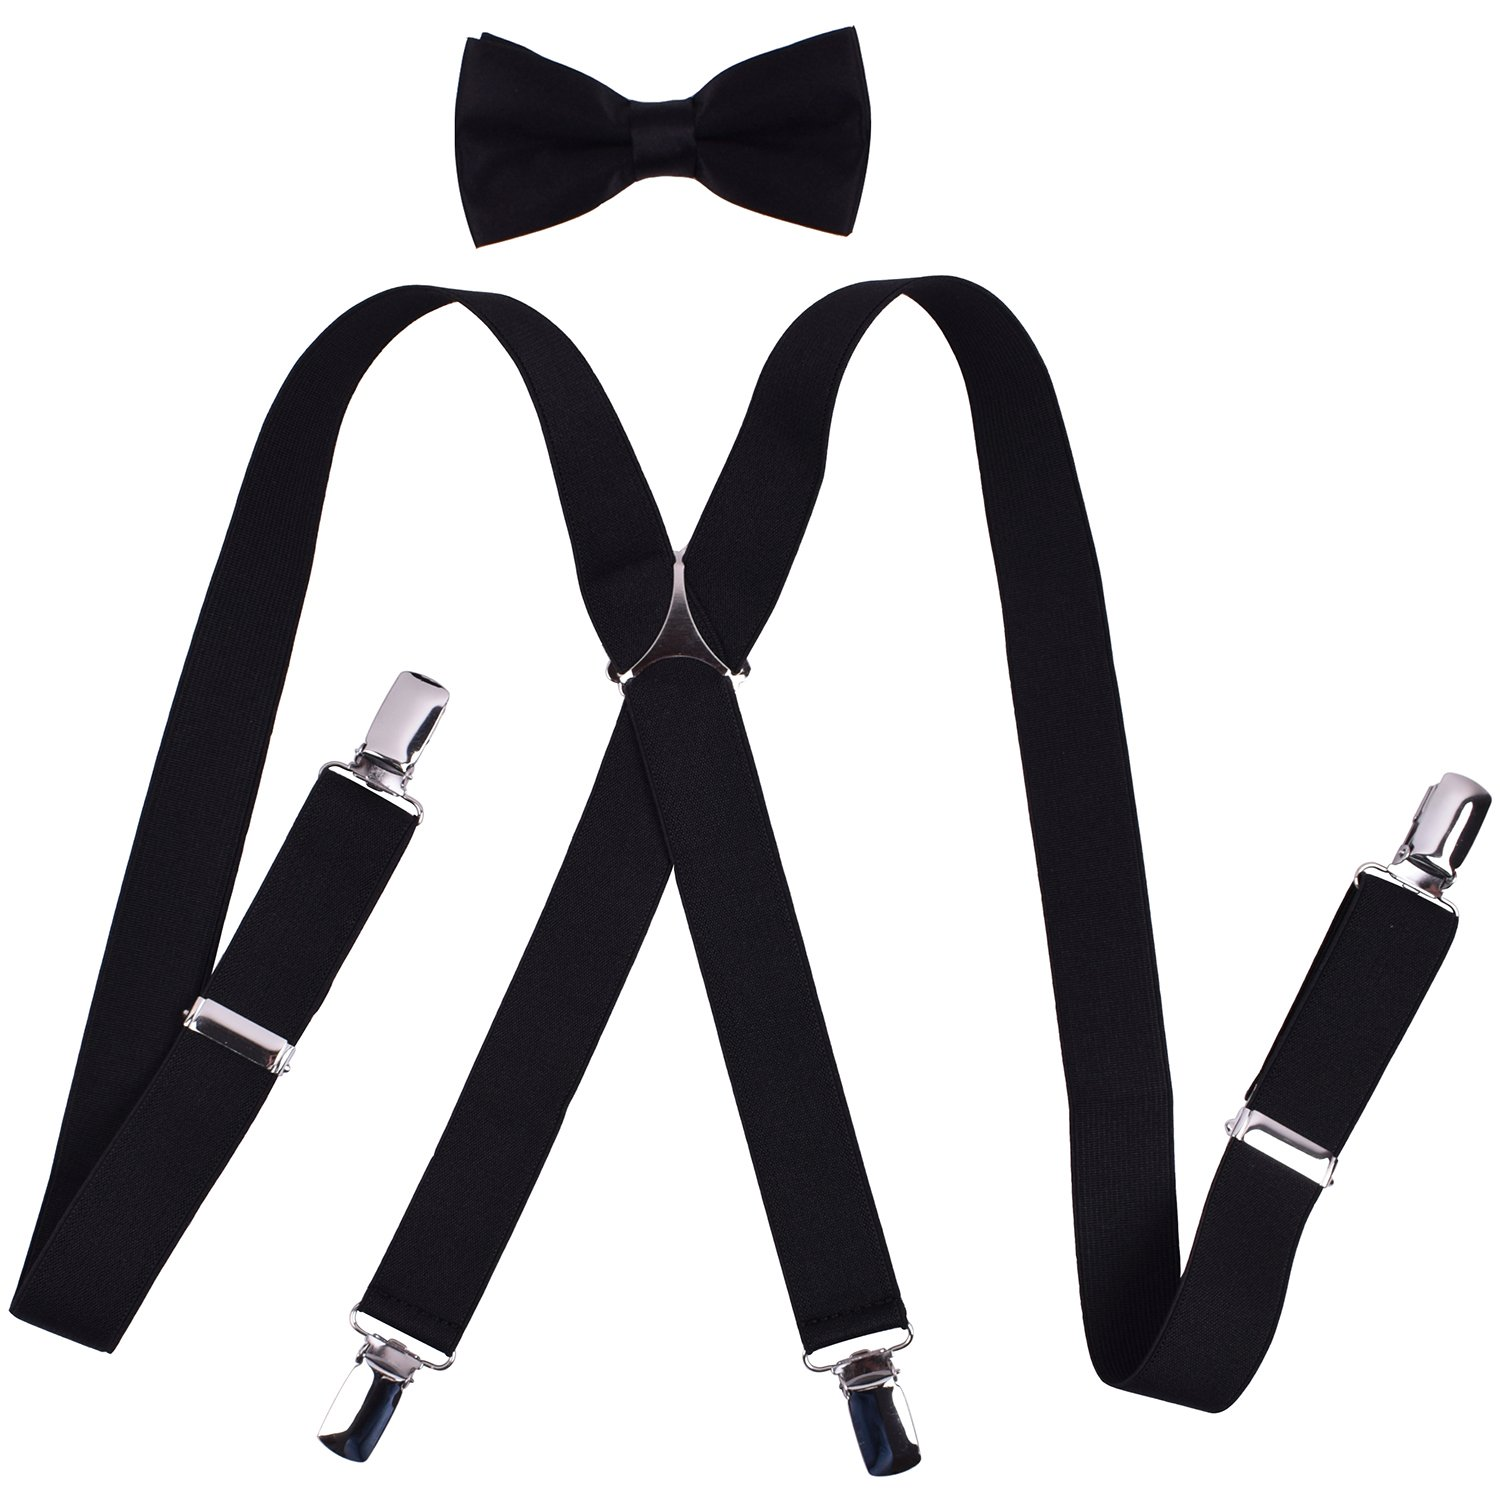 9a3eb8e1b18 Get Quotations · Mens Suspenders and Bow Tie Set Work Trouser Braces for  Party Tuxedo Solid Color